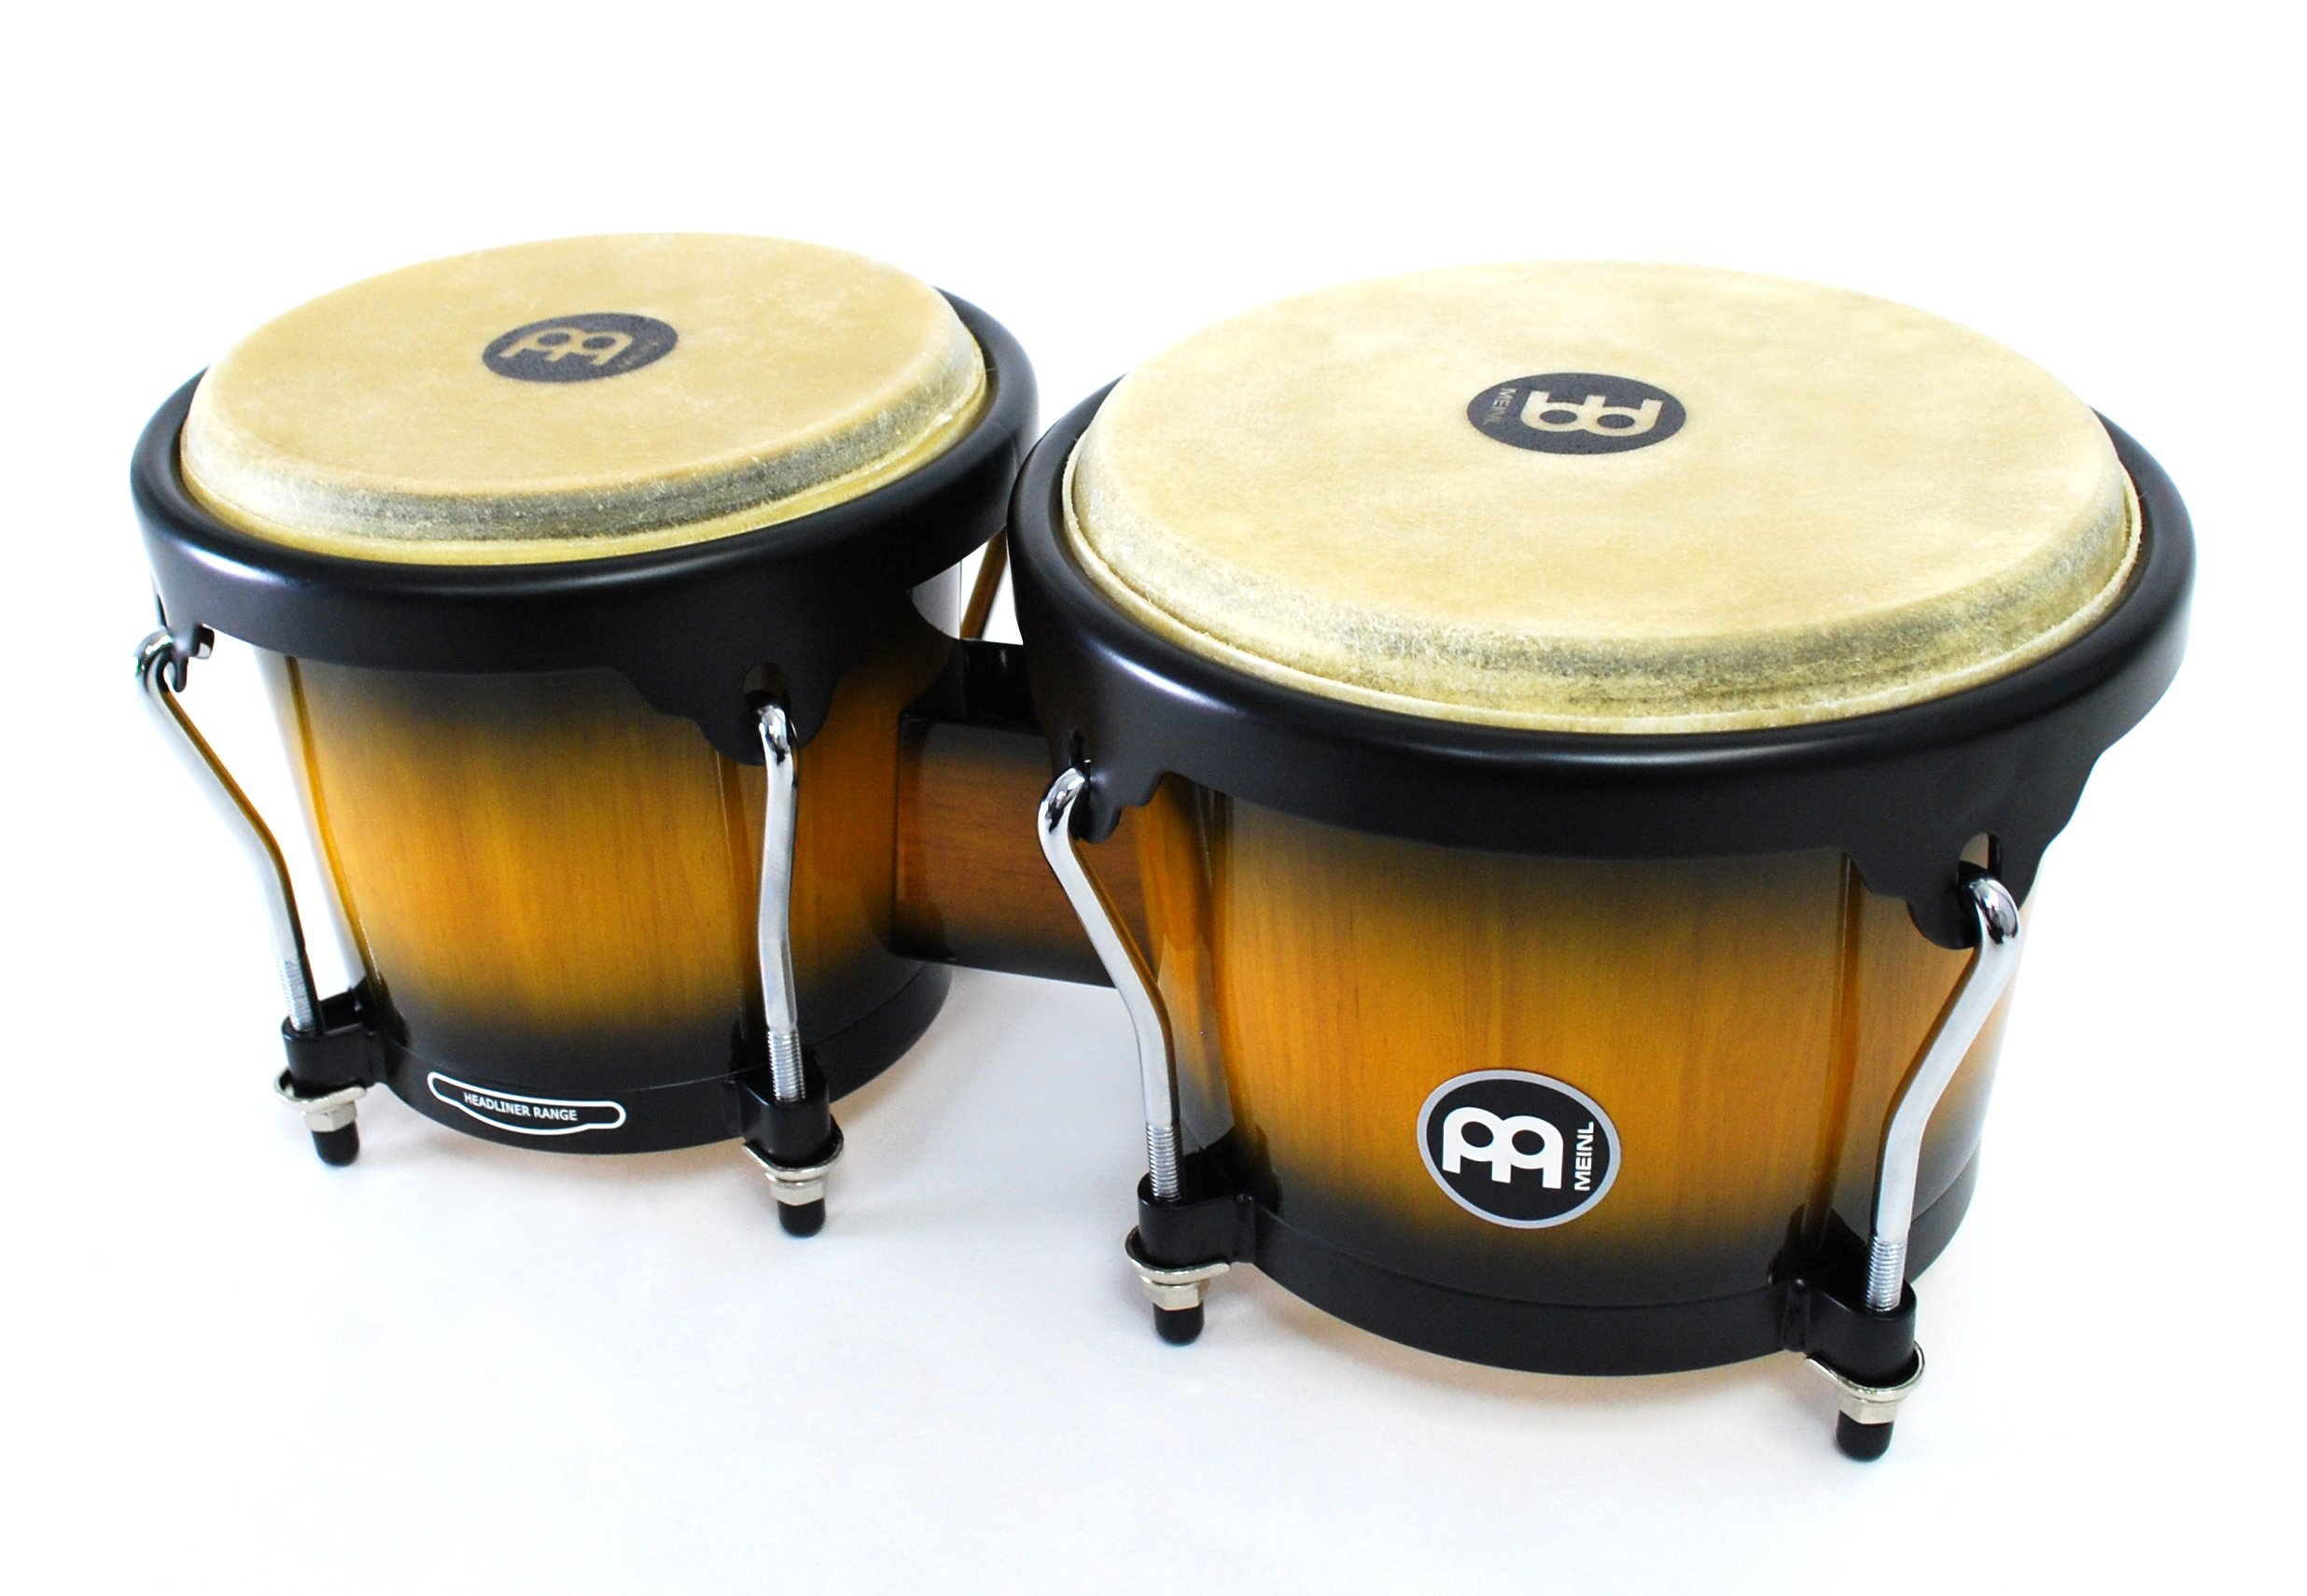 Meinl Percussion Bongos With Hardwood Shells - NOT MADE IN CHINA - Vintage Sun burst Finish, Buffalo Skin Heads, 2-YEAR WARRANTY HB100VSB by Meinl Percussion (Image #6)